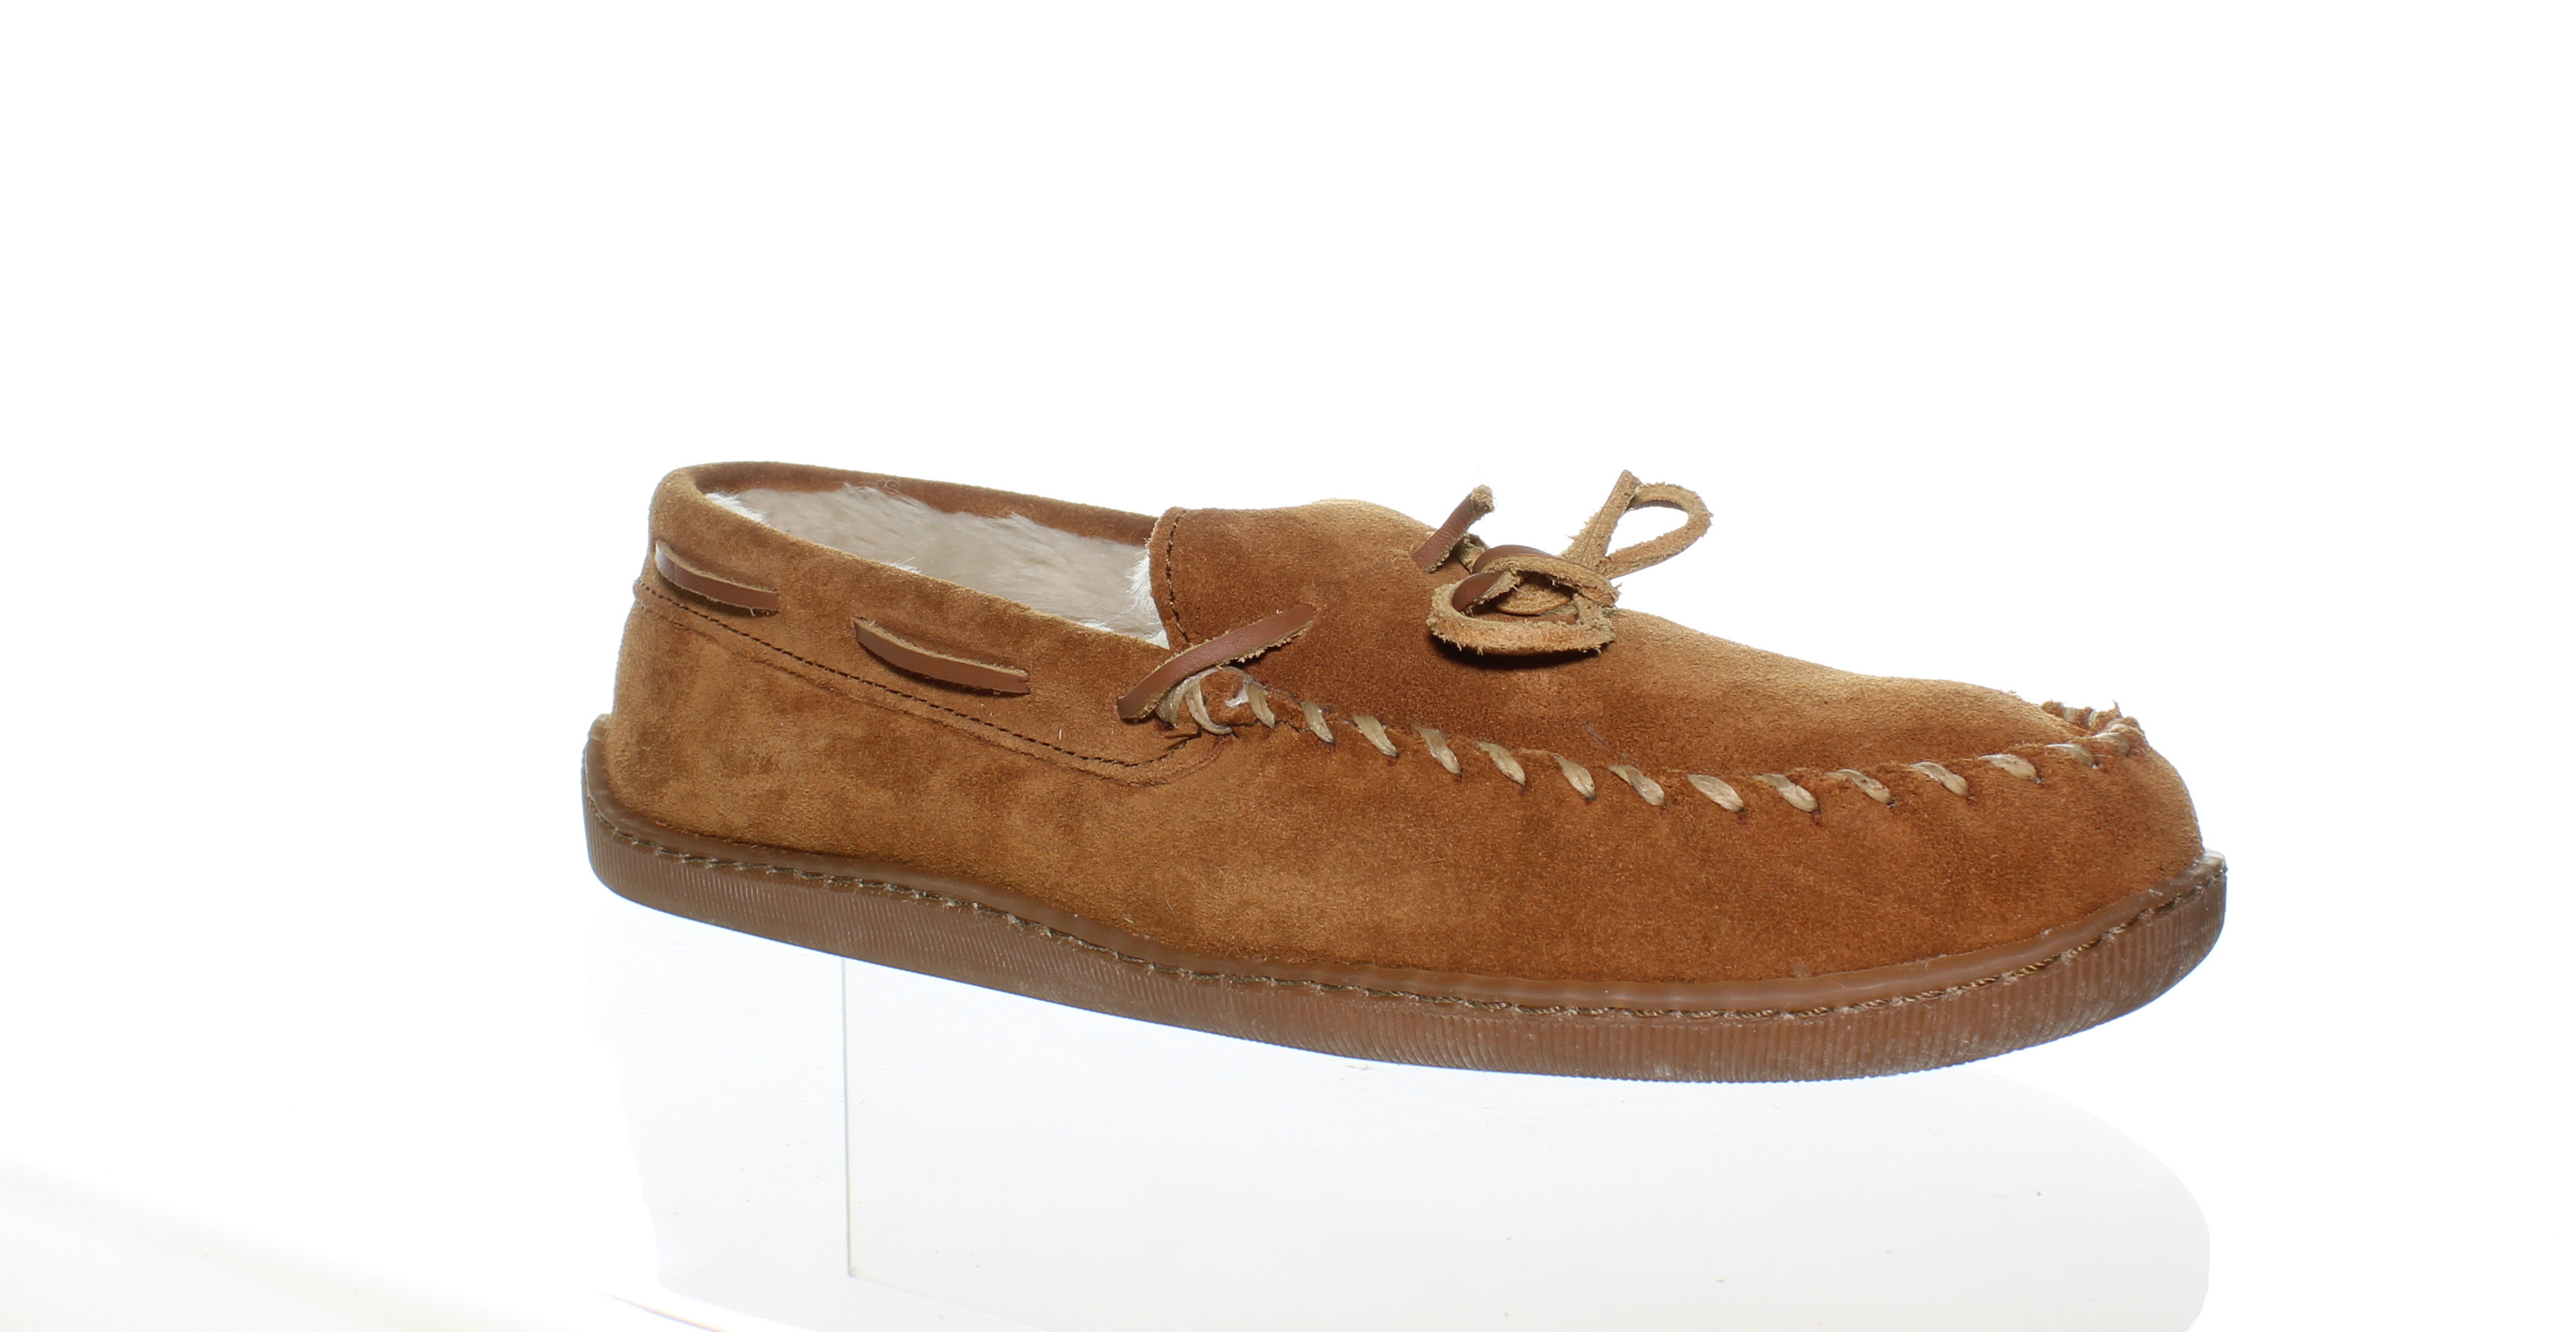 a2b23ff4833 Minnetonka MENS Pile Lined Hardsole Brown Moccasin Slippers Size 11 (116493)